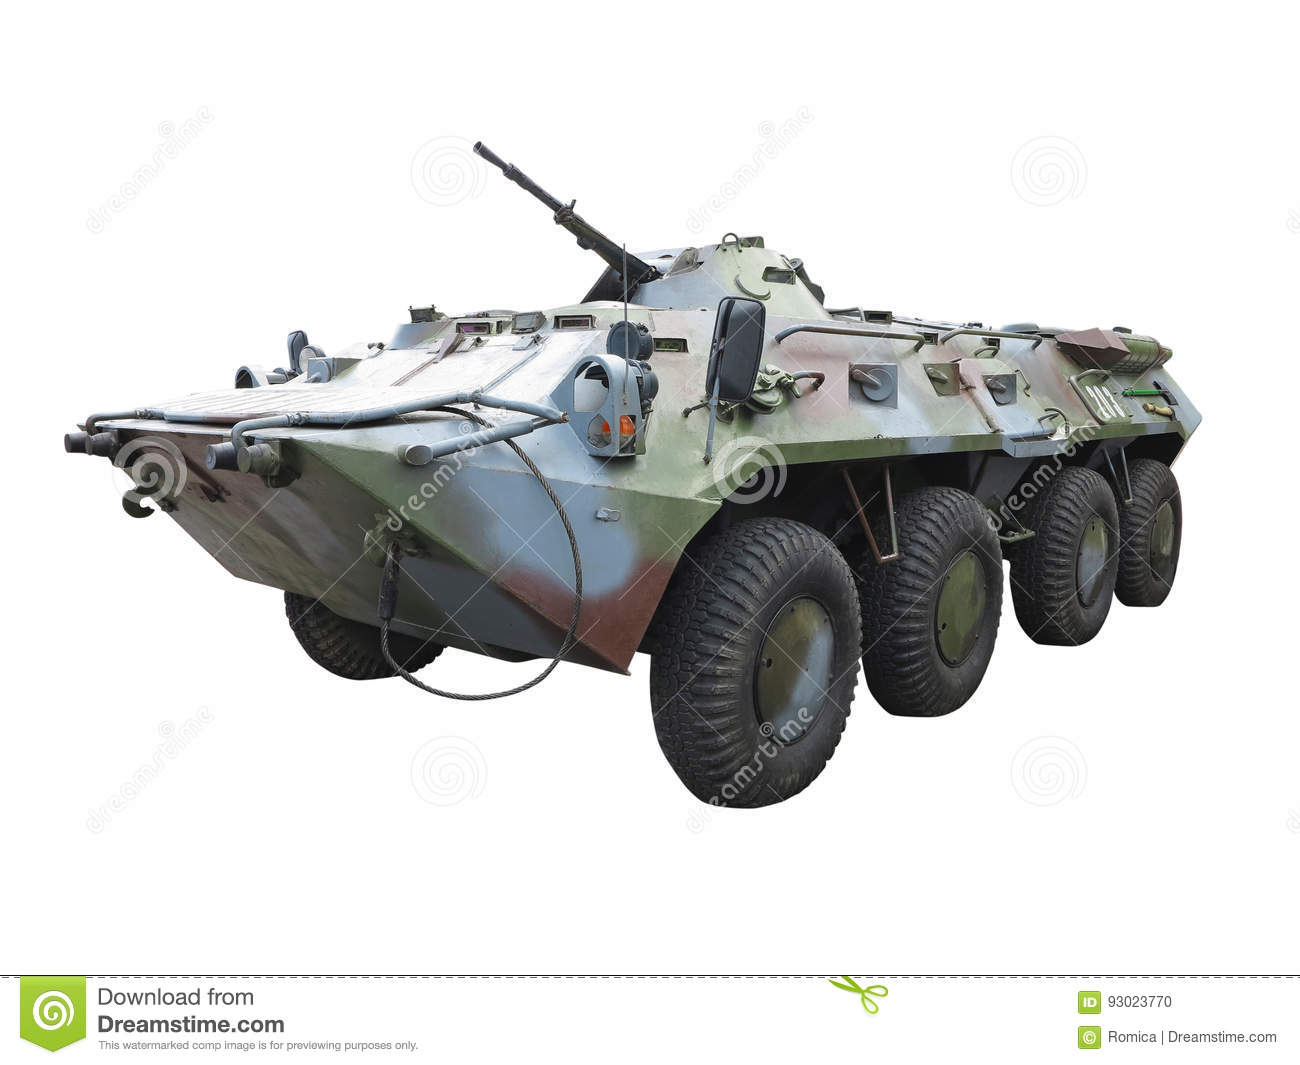 Russian Army BTR-82A wheeled armoured vehicle personnel carrier